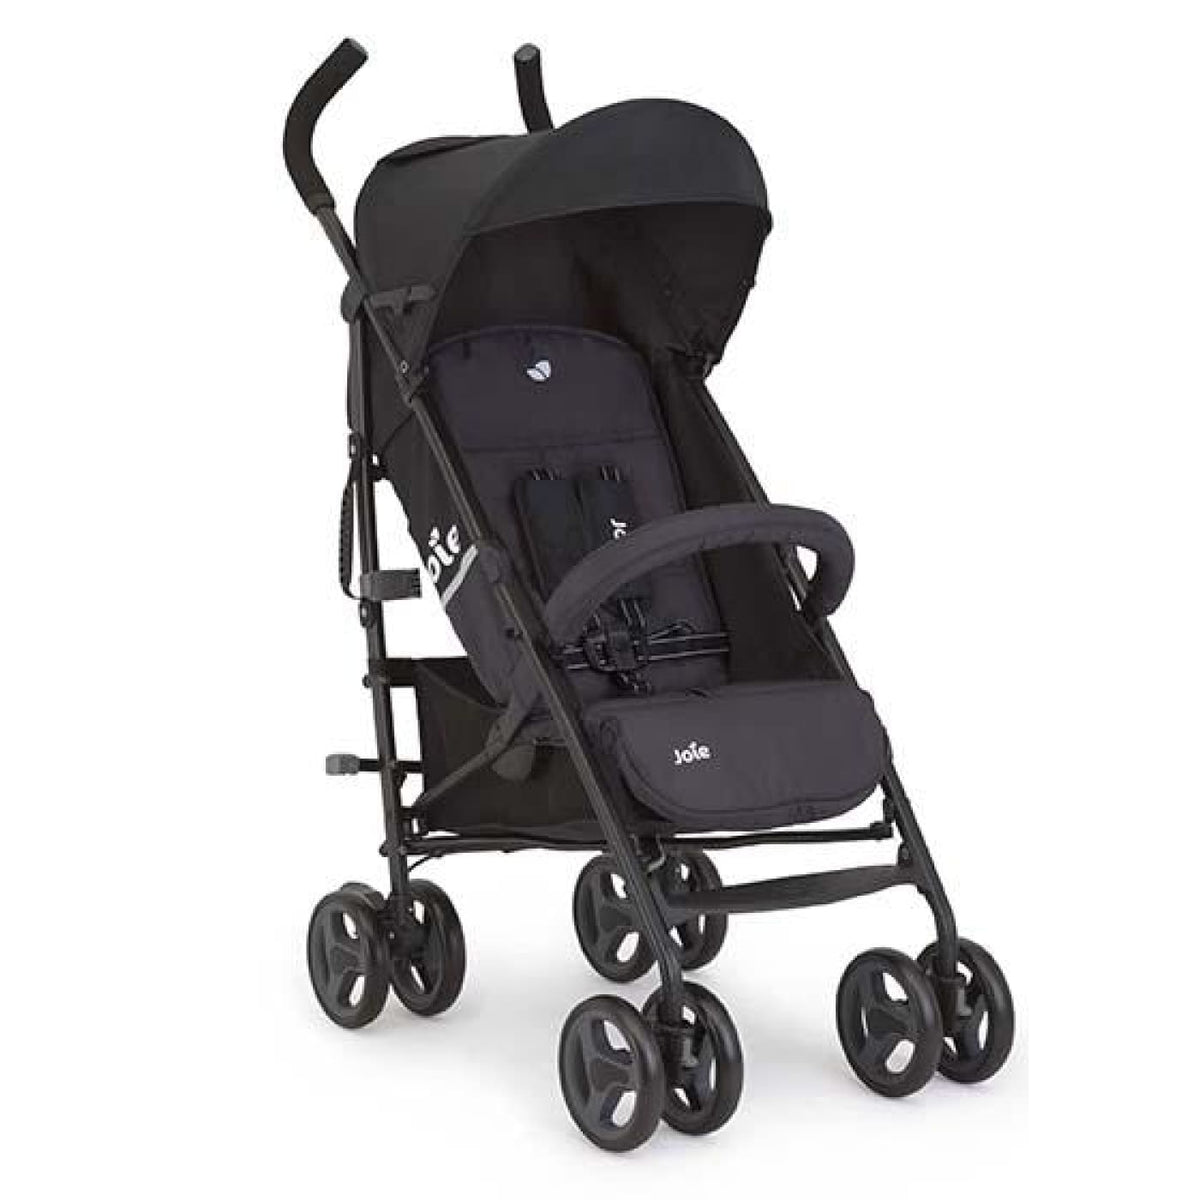 Joie Nitro LX Stroller - Two Tone Black - PRAMS & STROLLERS - 4 WHEEL